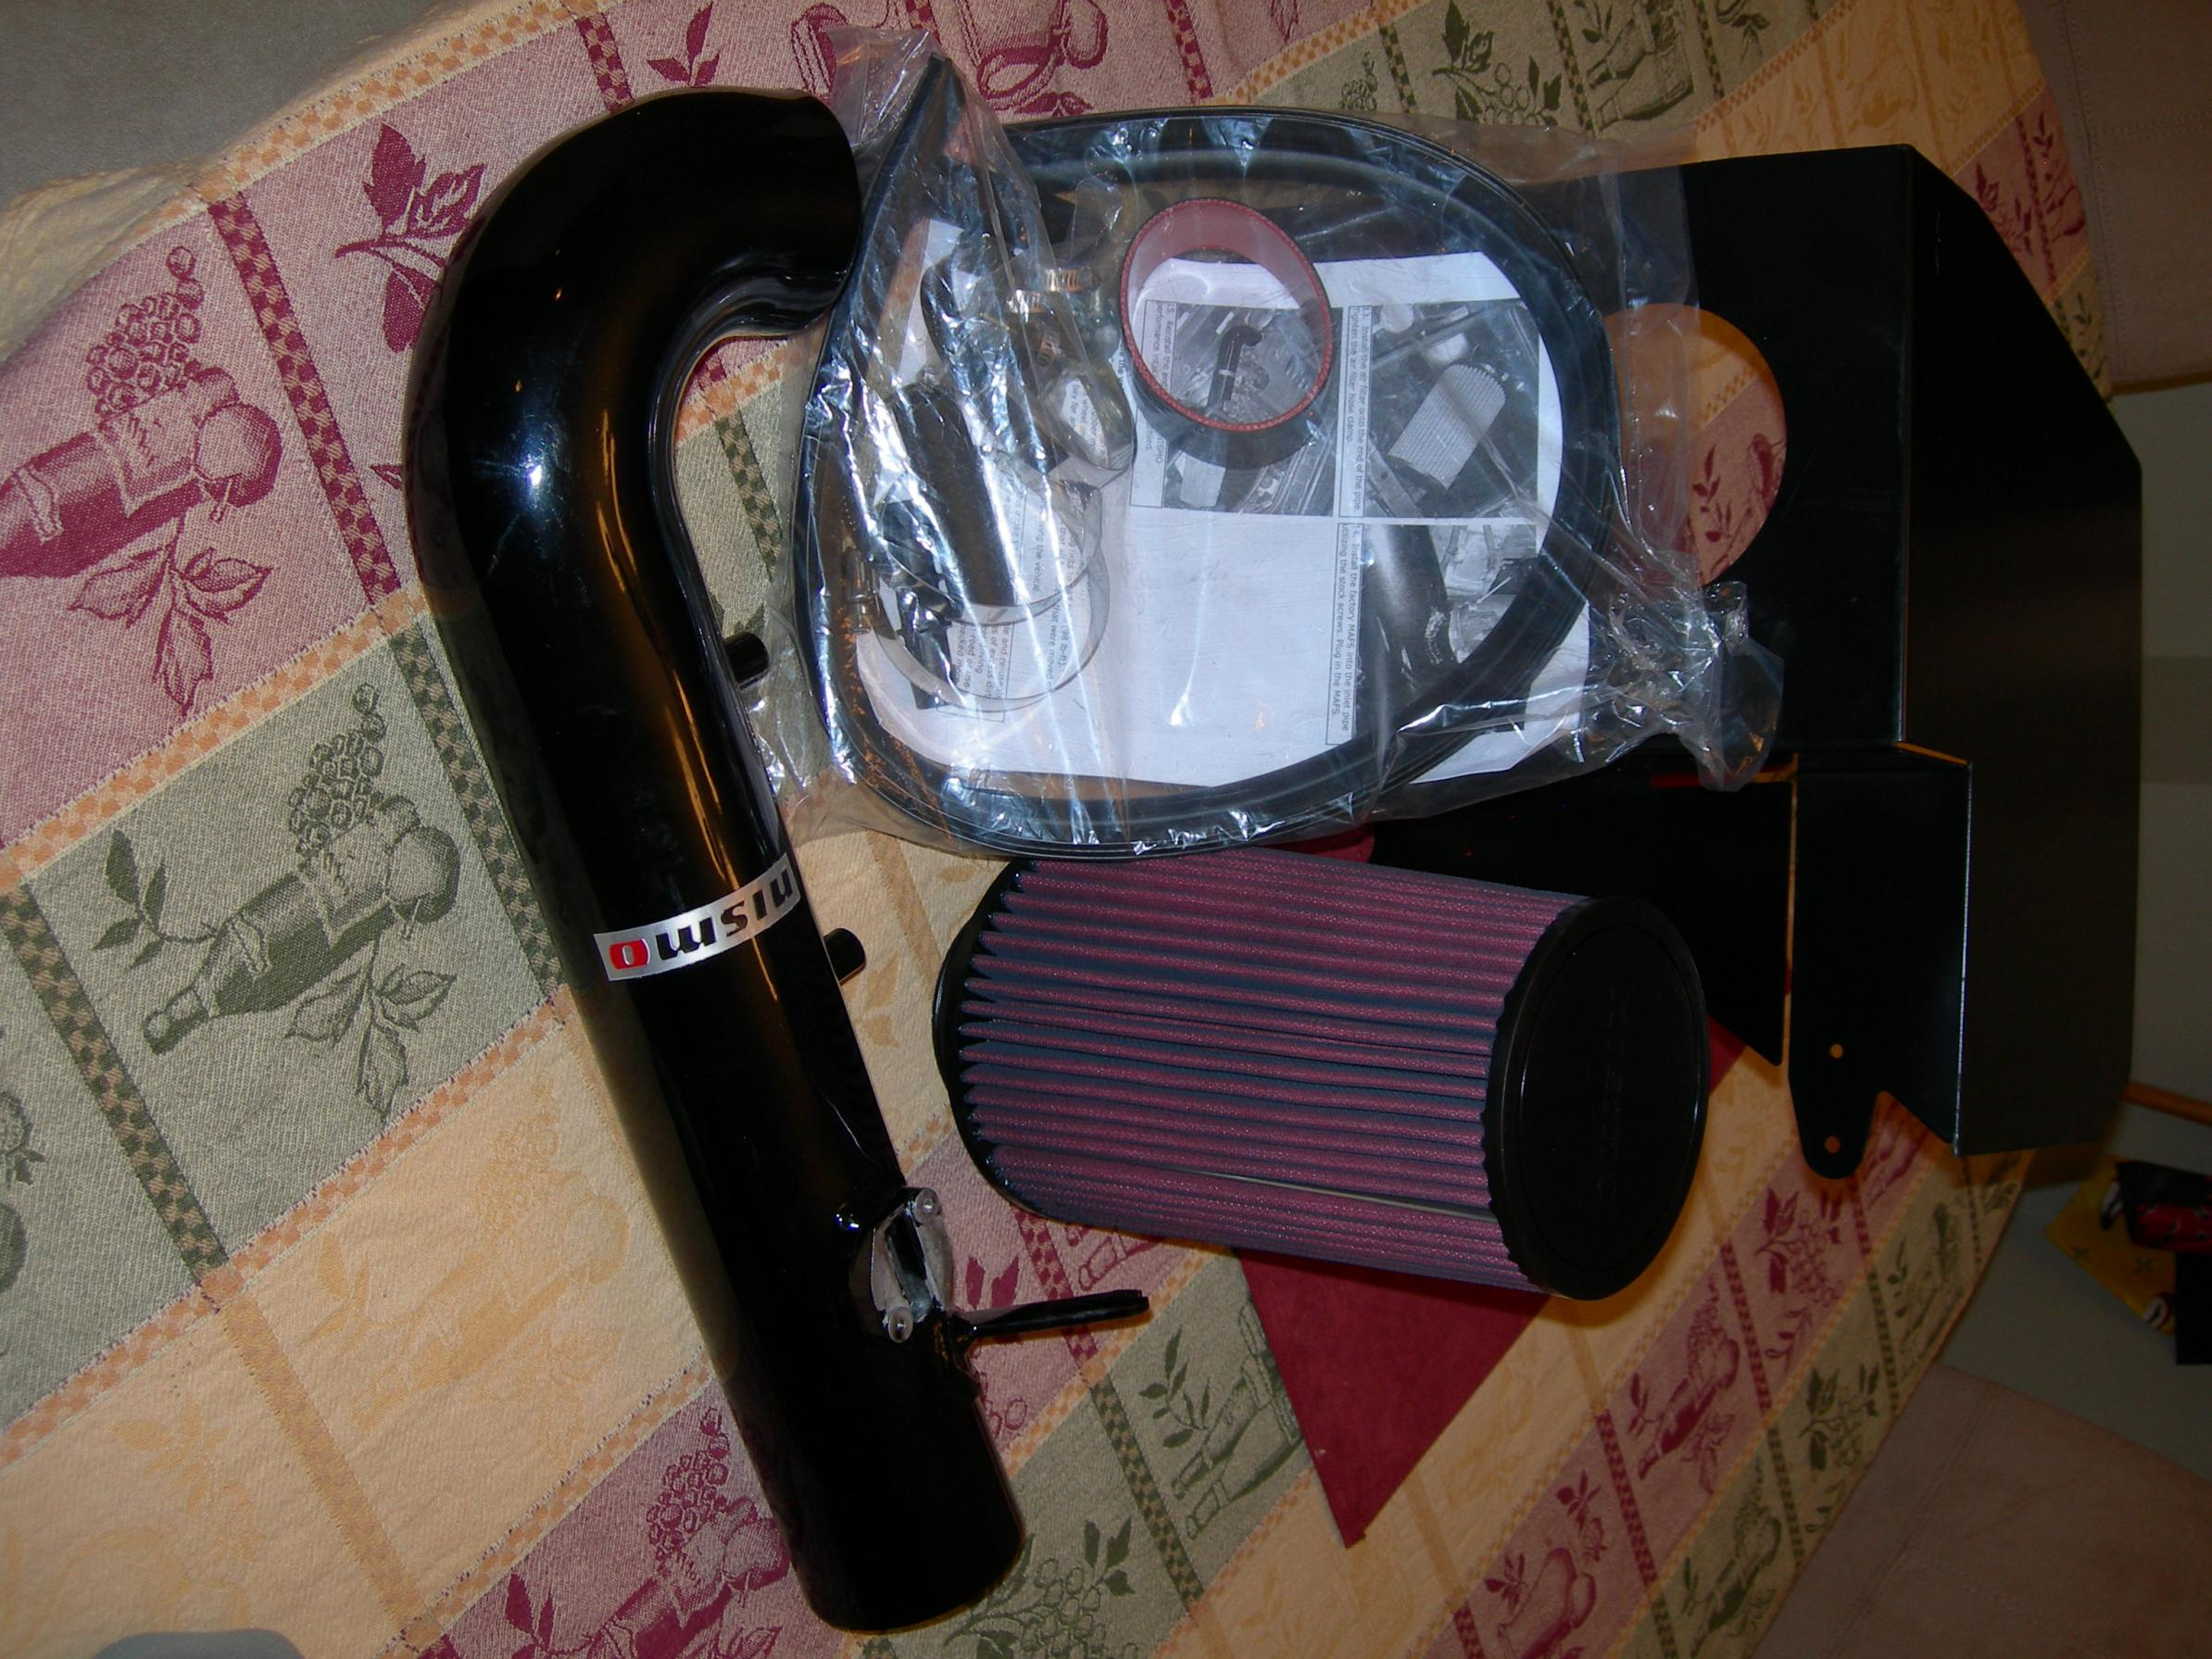 Nismo Cold Air Intake For Sale-dscn0172.jpg